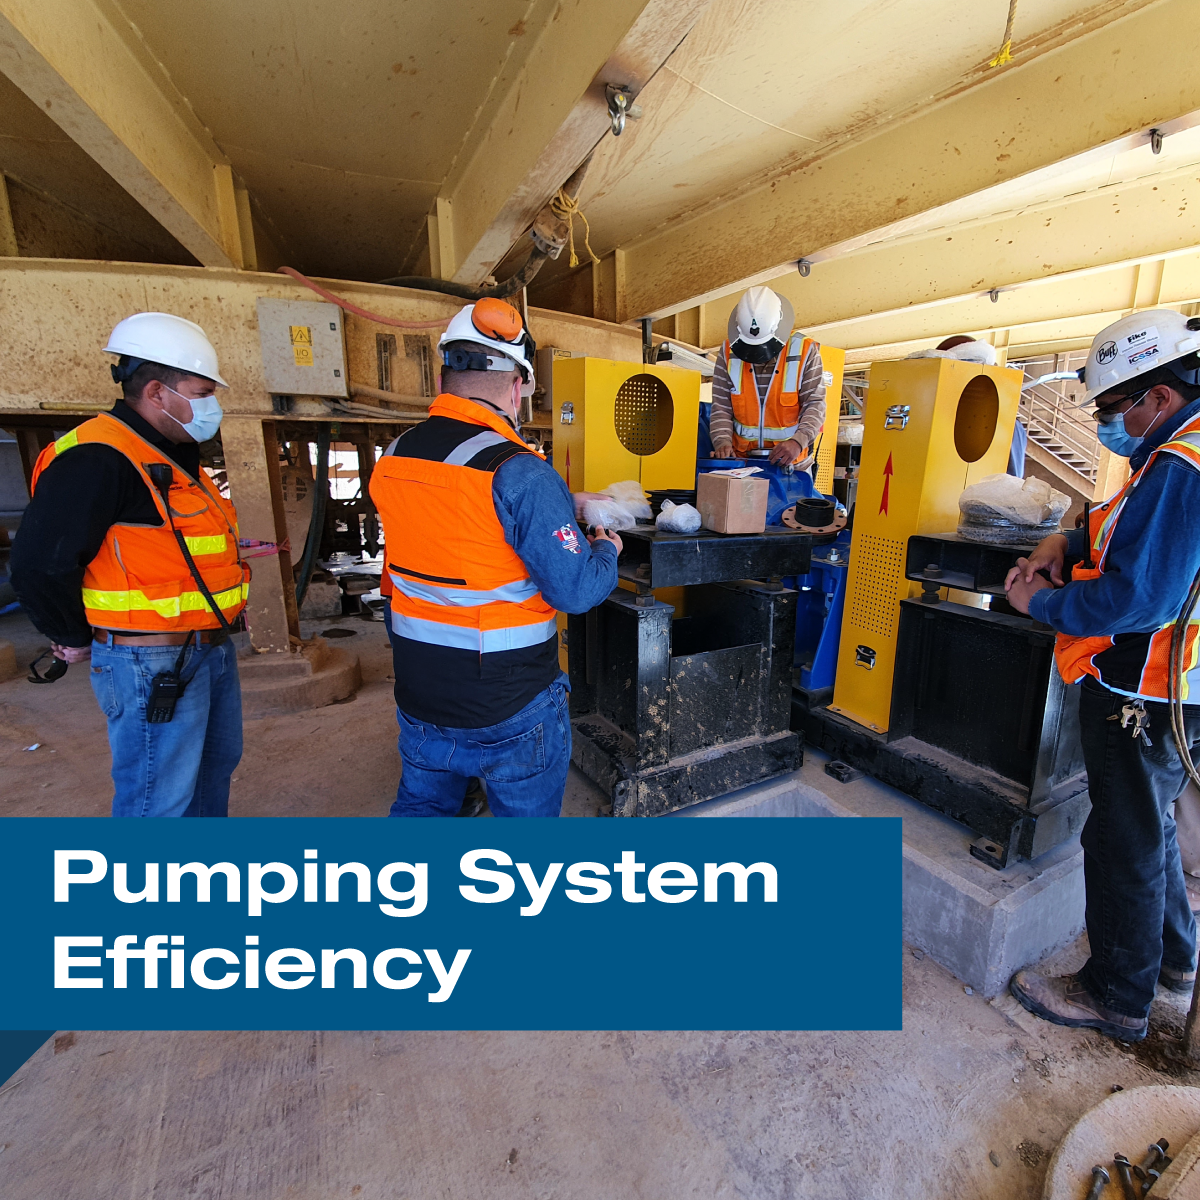 Test for Pumping System Efficiency